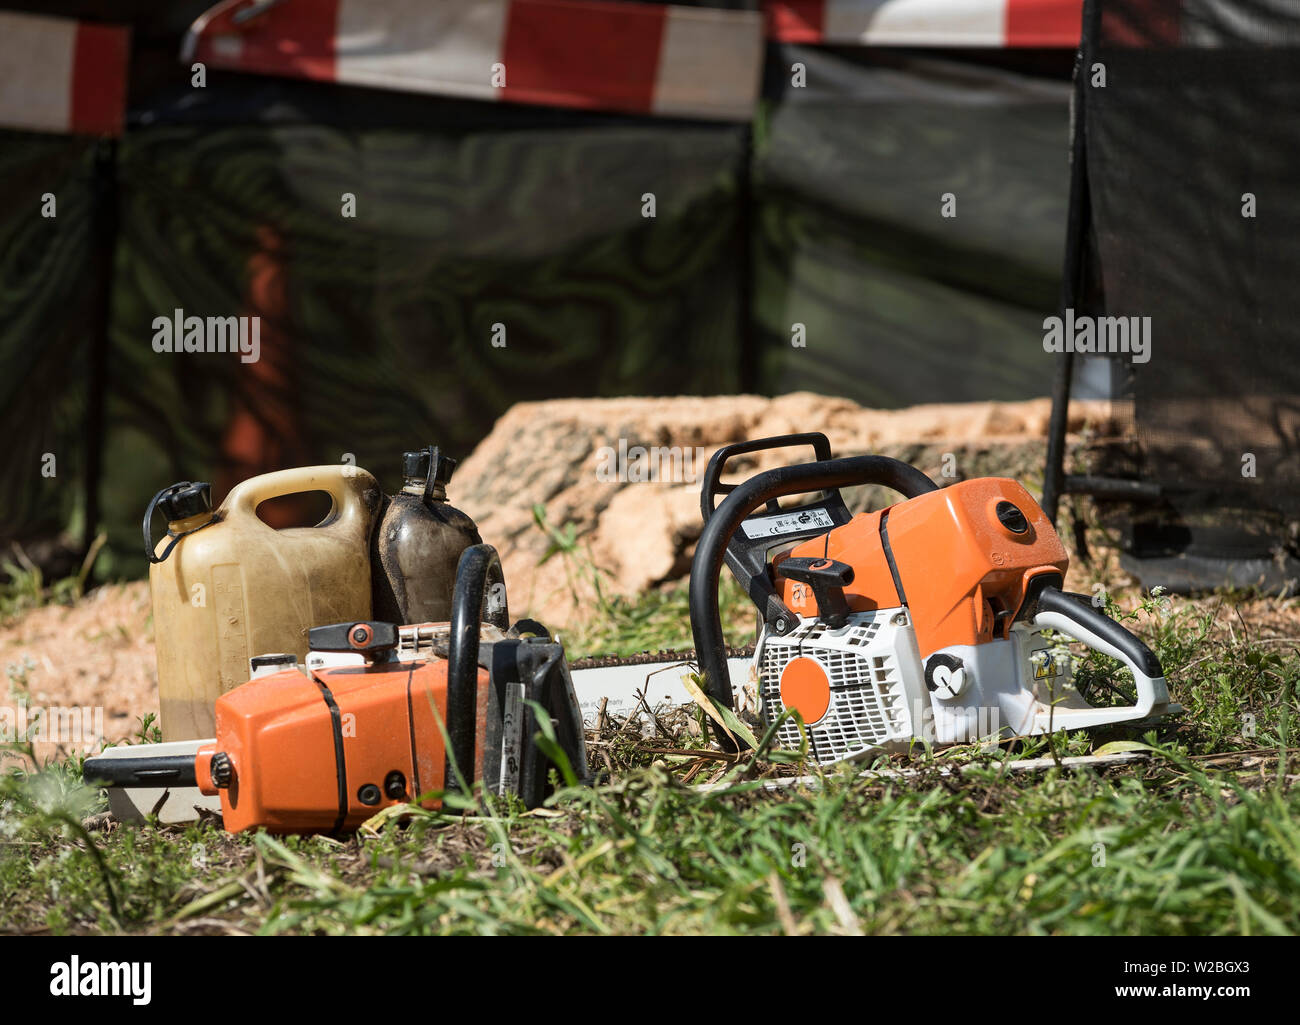 Two chainsaws sat in the grass about to be refueled. - Stock Image